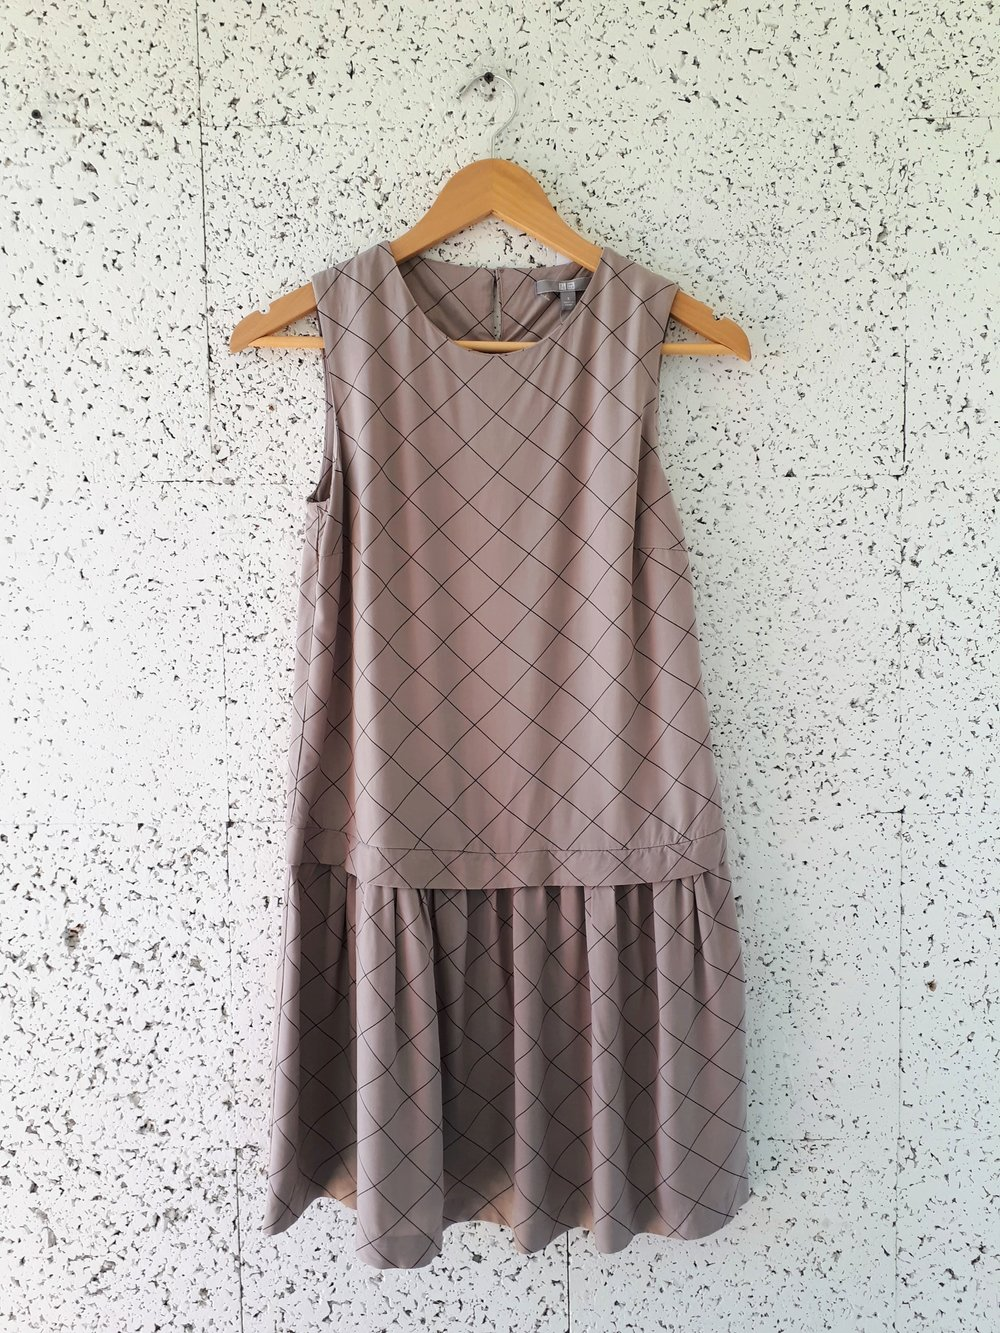 Uniqlo dress (NWT); Size S, $36